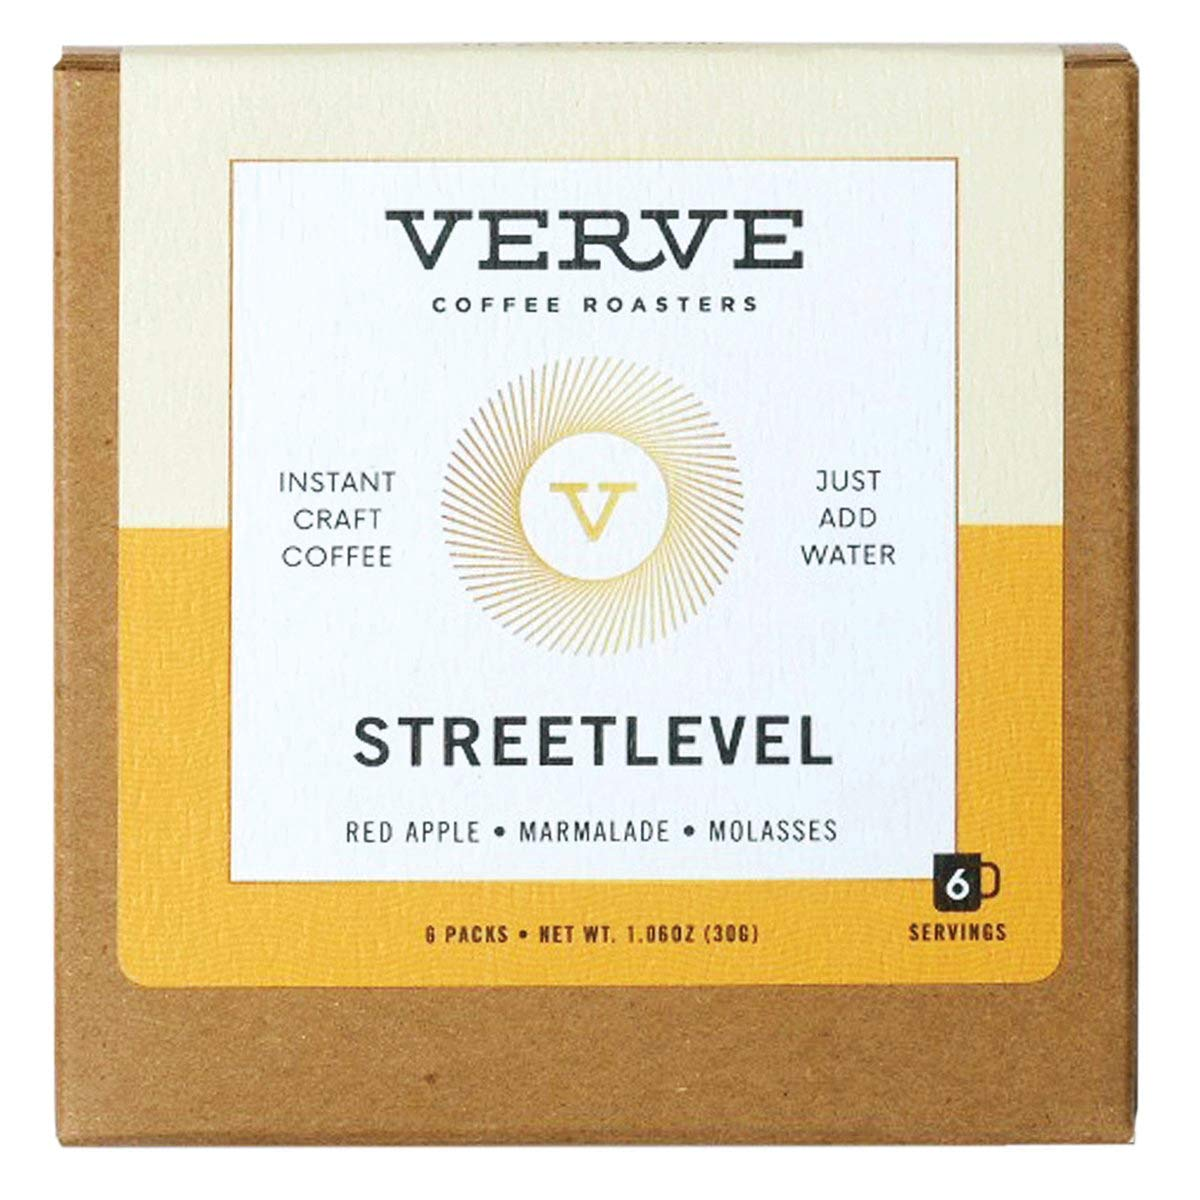 Verve Coffee Roasters Streetlevel Blend Direct-Trade Instant Craft Coffee, Tasting Notes of Red Apple, Marmalade, and Molasses